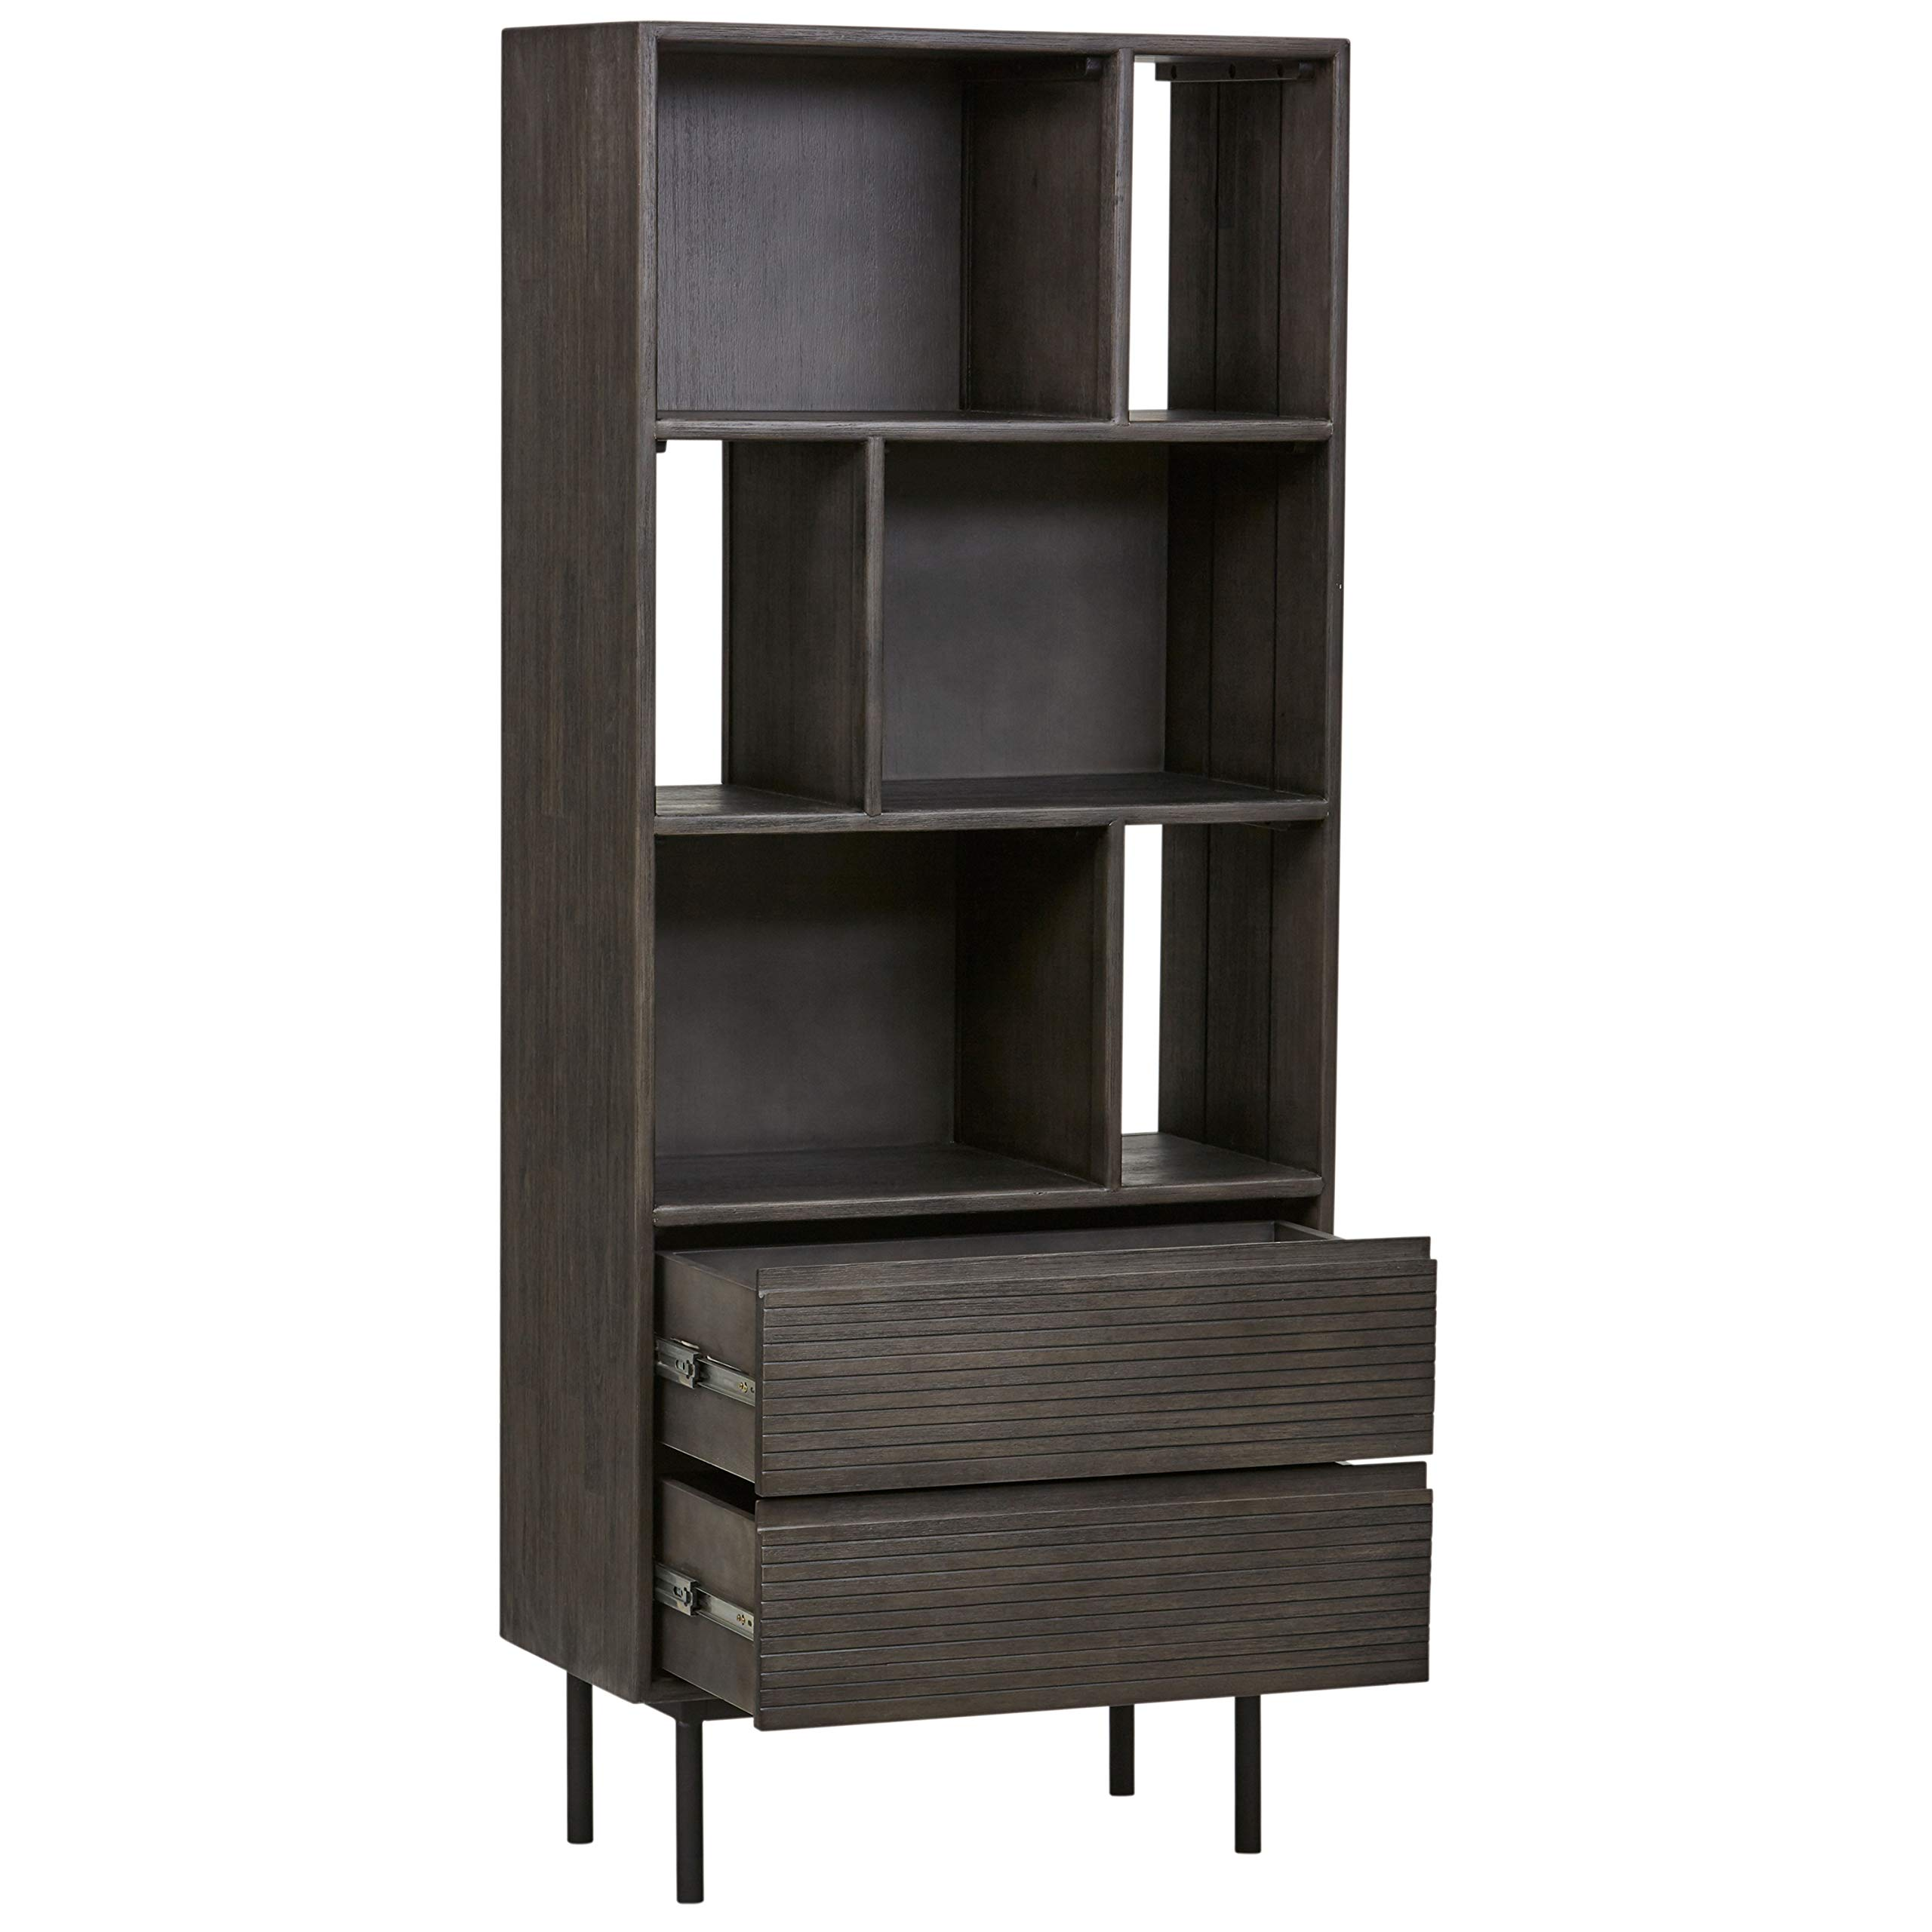 Rivet Stevens Modern Bookcase, 27.56''W, Acacia, Brushed Tundra Gray by Rivet (Image #7)